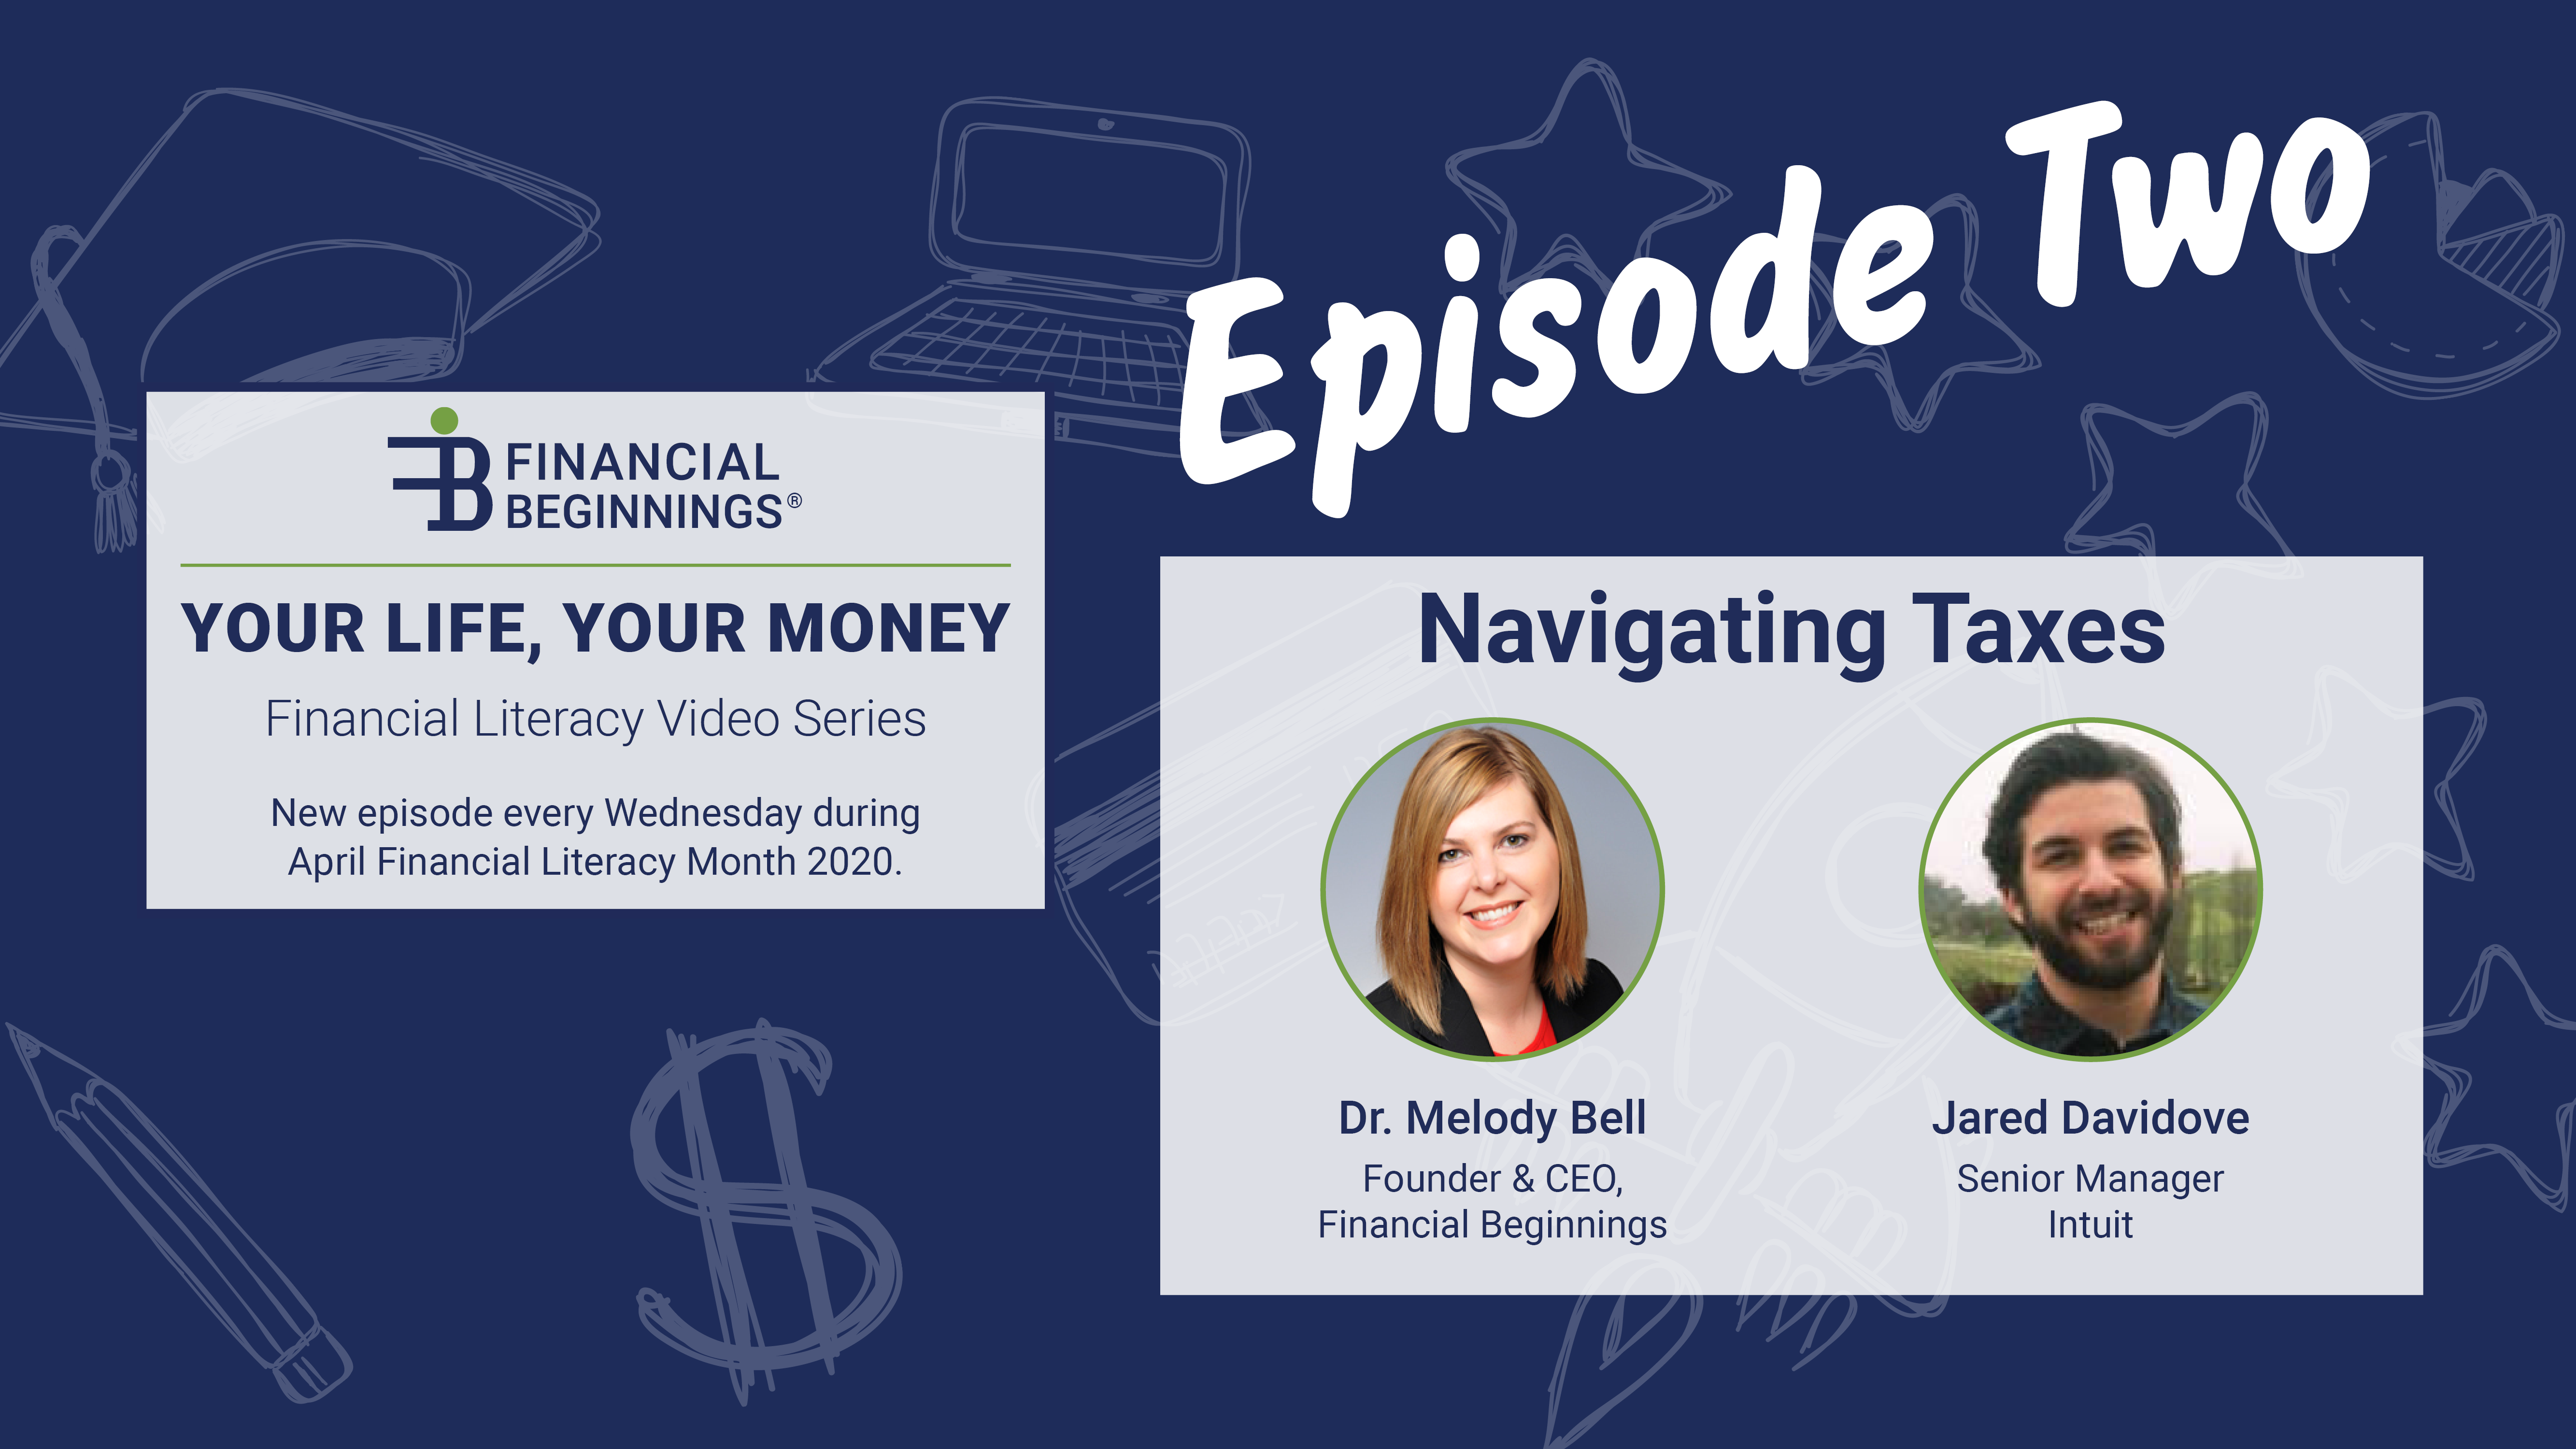 Episode 2: Navigating Taxes